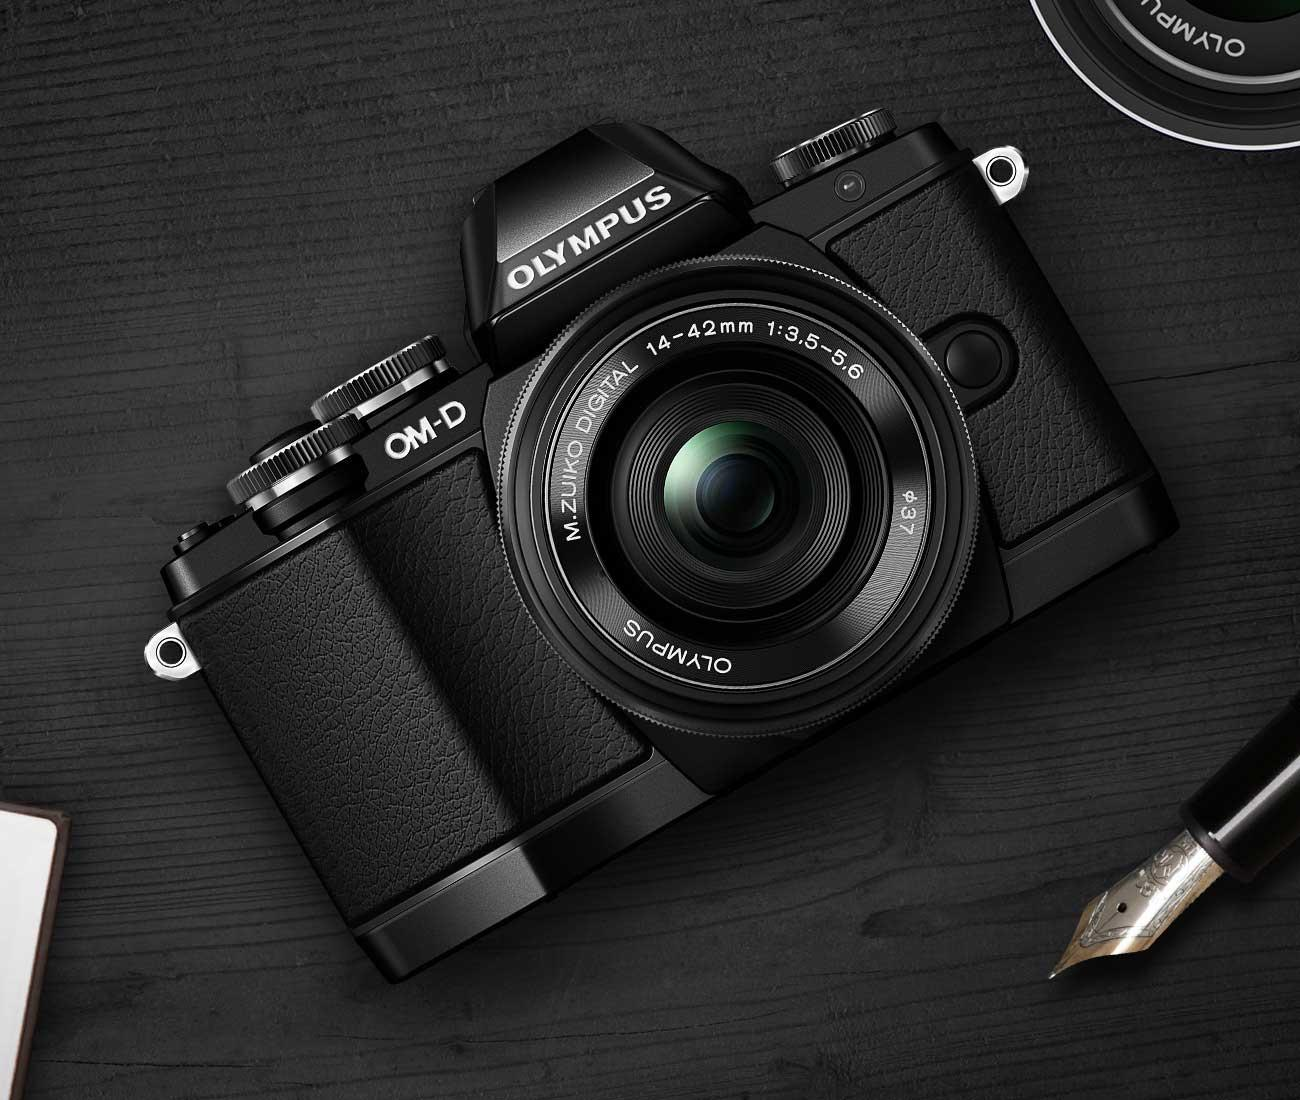 Olympus OM-D E-M10 Mirrorless Camera Black (Body Only)